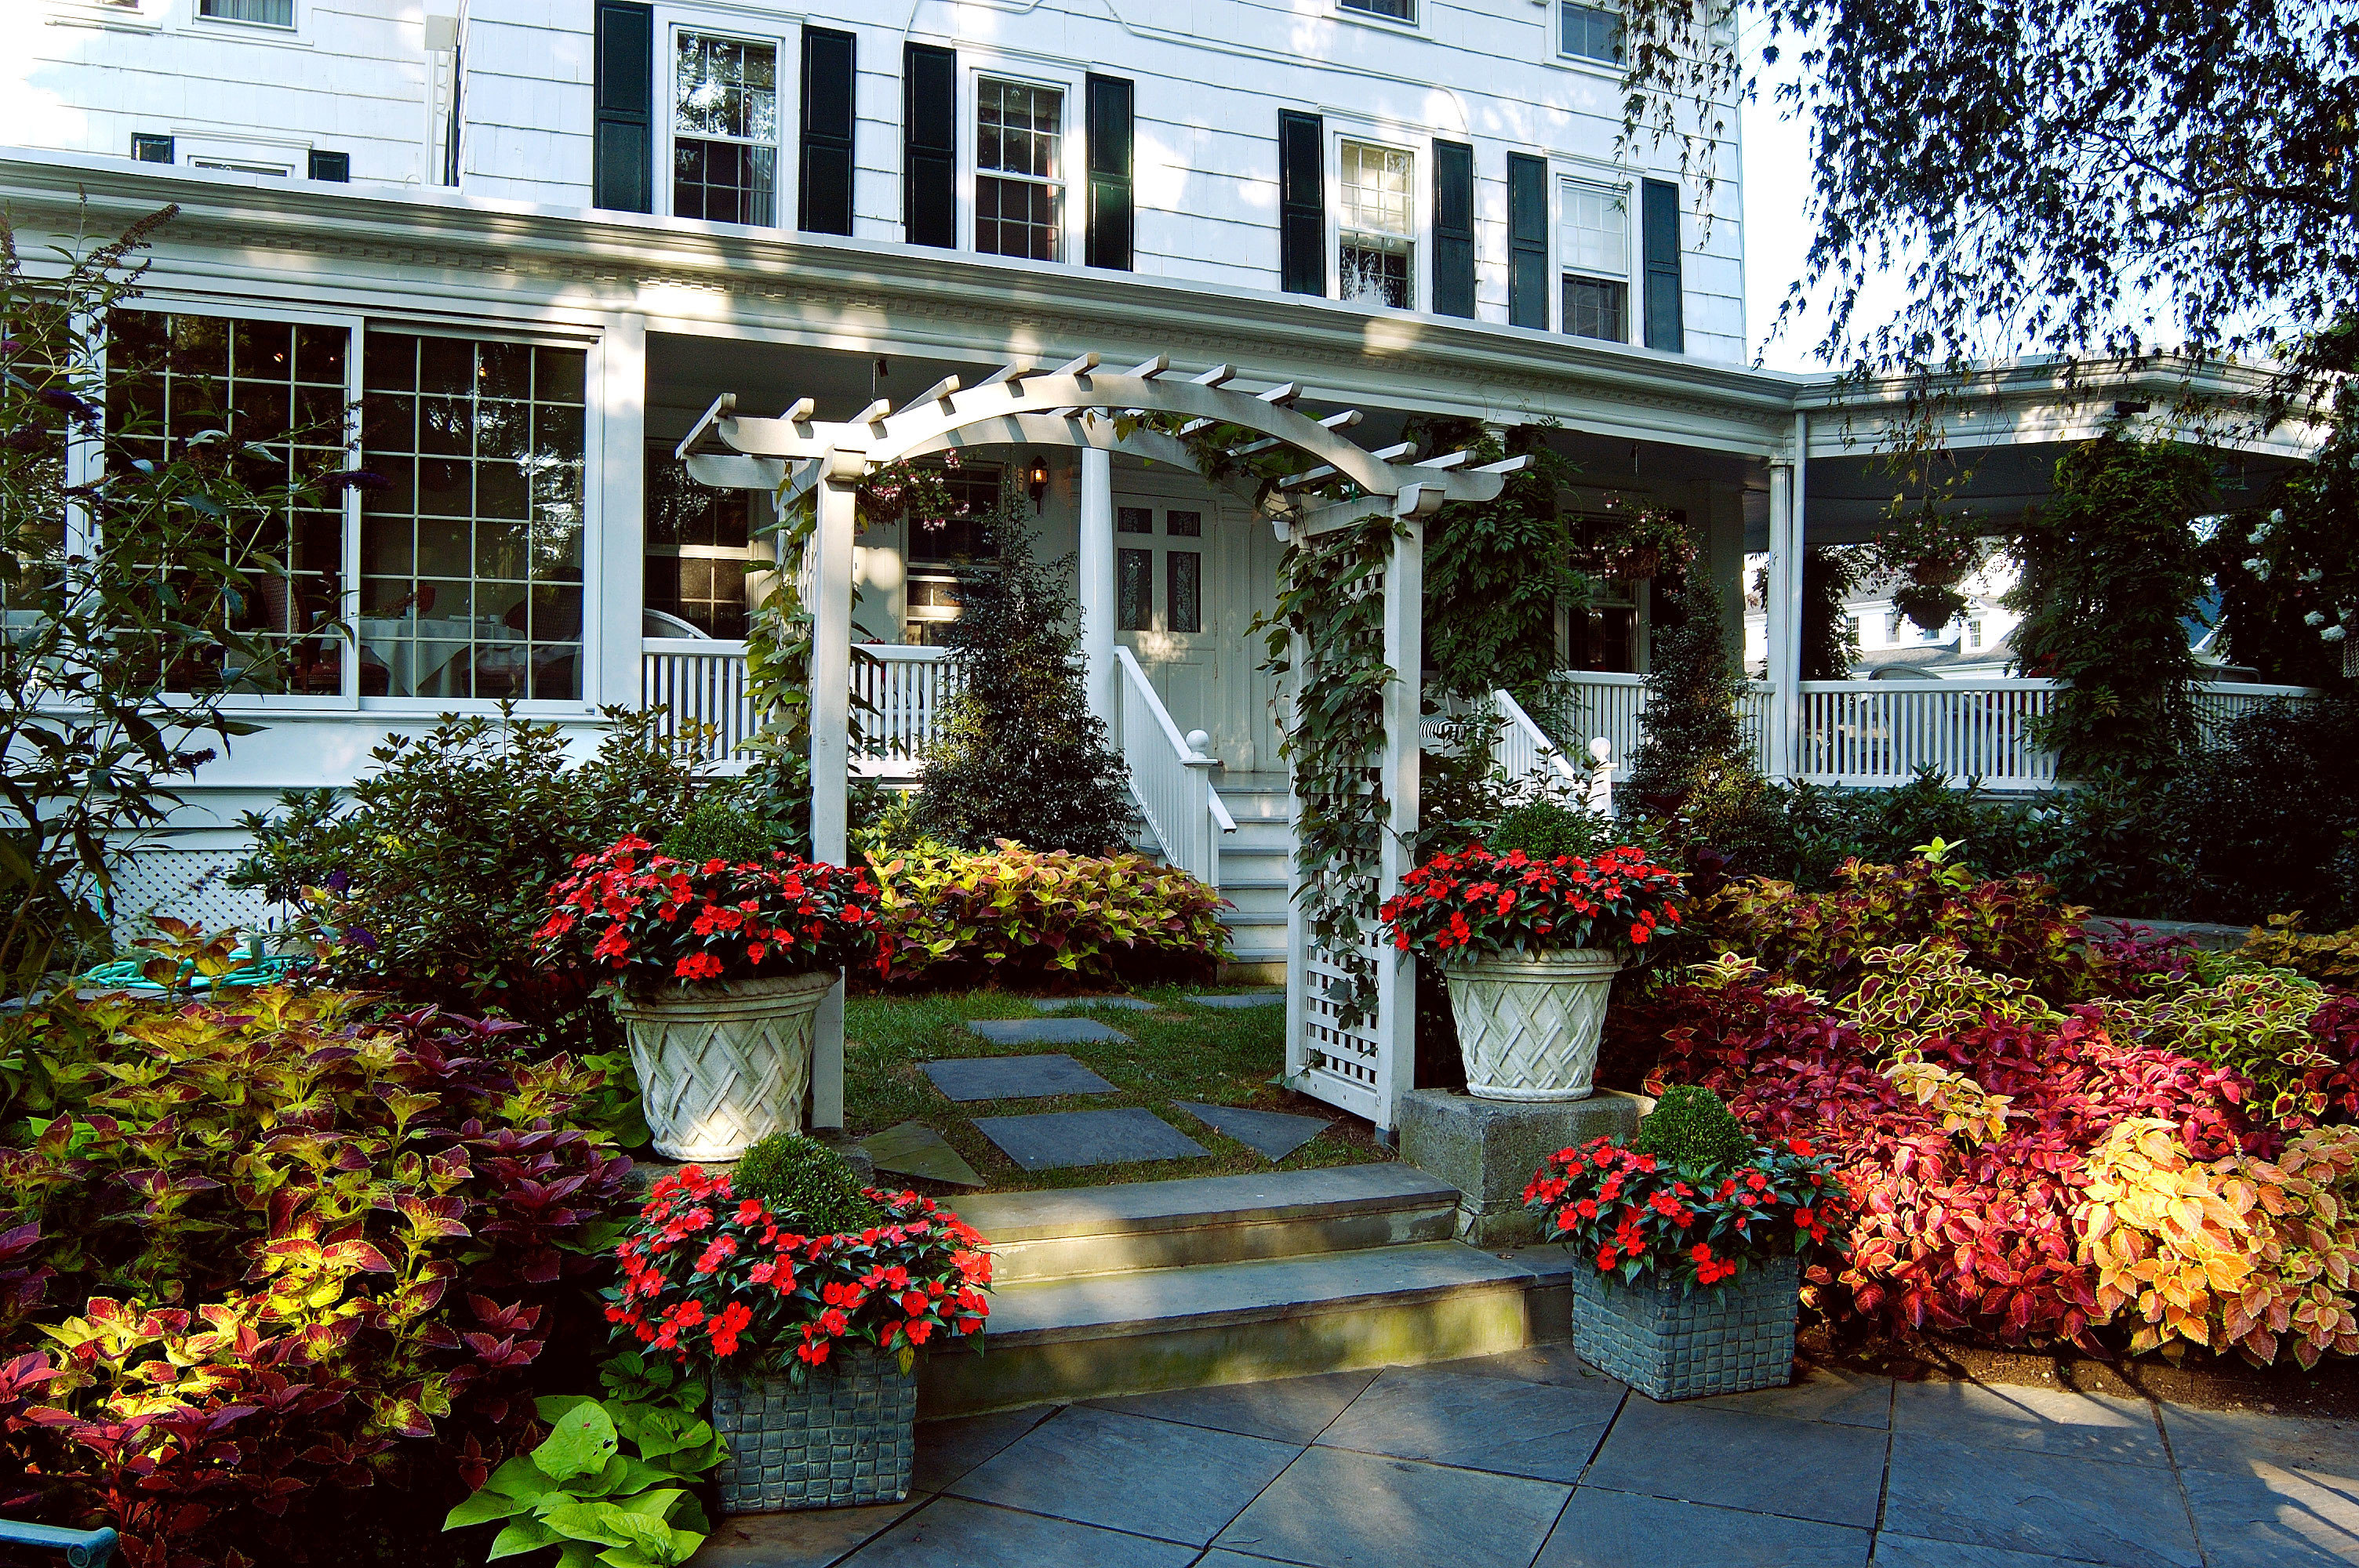 Country Elegant Girls Getaways Grounds Inn Trip Ideas Weekend Getaways building tree flower house plant Courtyard backyard Garden home yard residential area porch outdoor structure bushes cottage landscaping stone